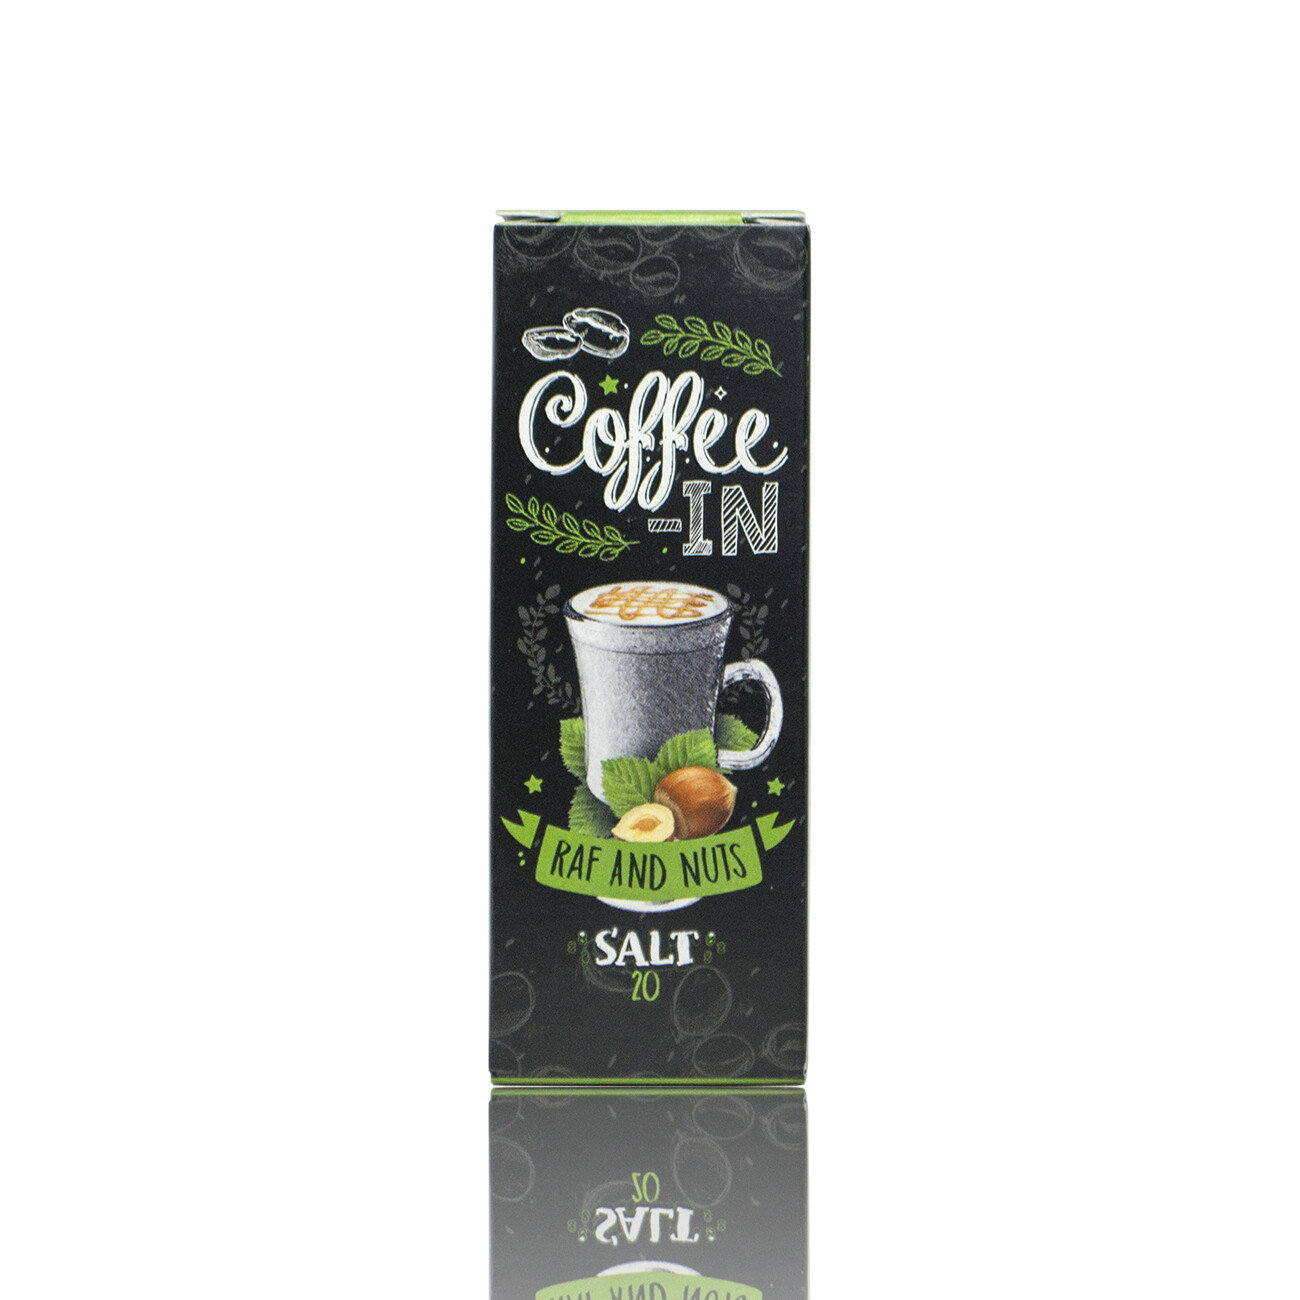 COFFE-IN SALT: RAF NUTS 20MG STRONG